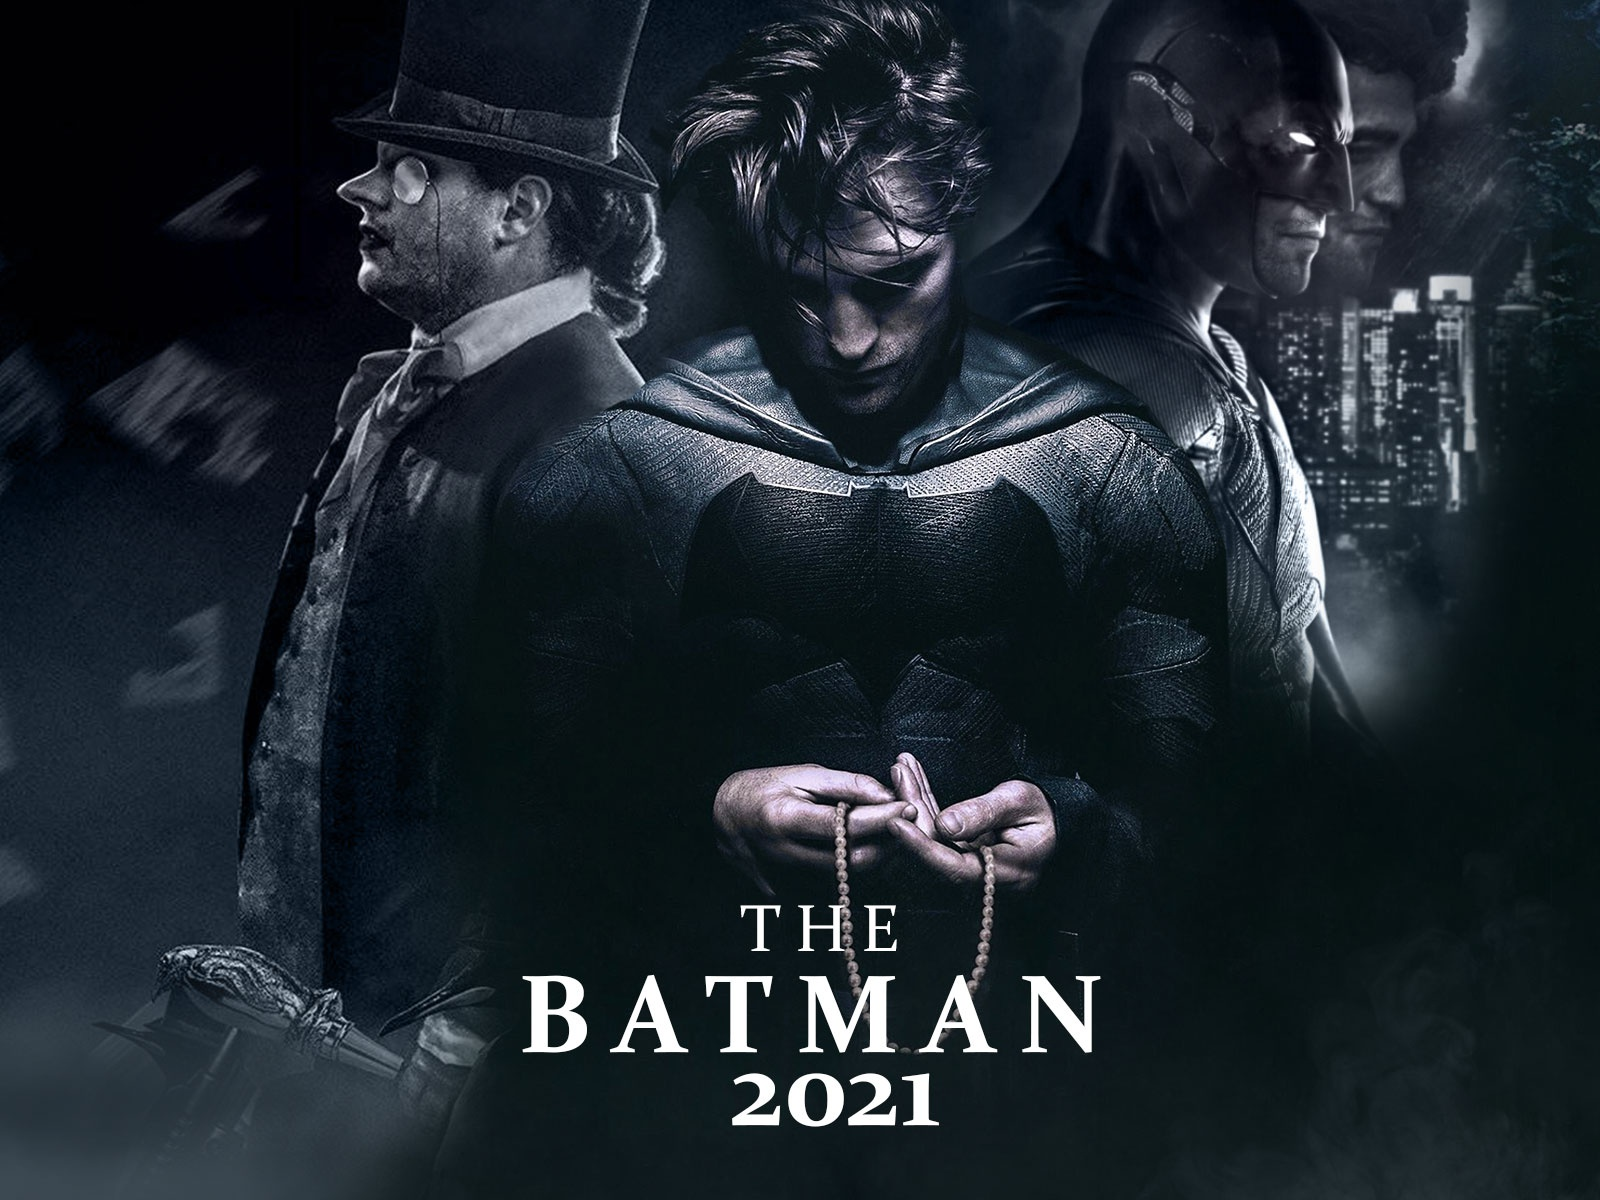 'The Batman' Trailer Is Selling The Opposite Of A Blockbuster